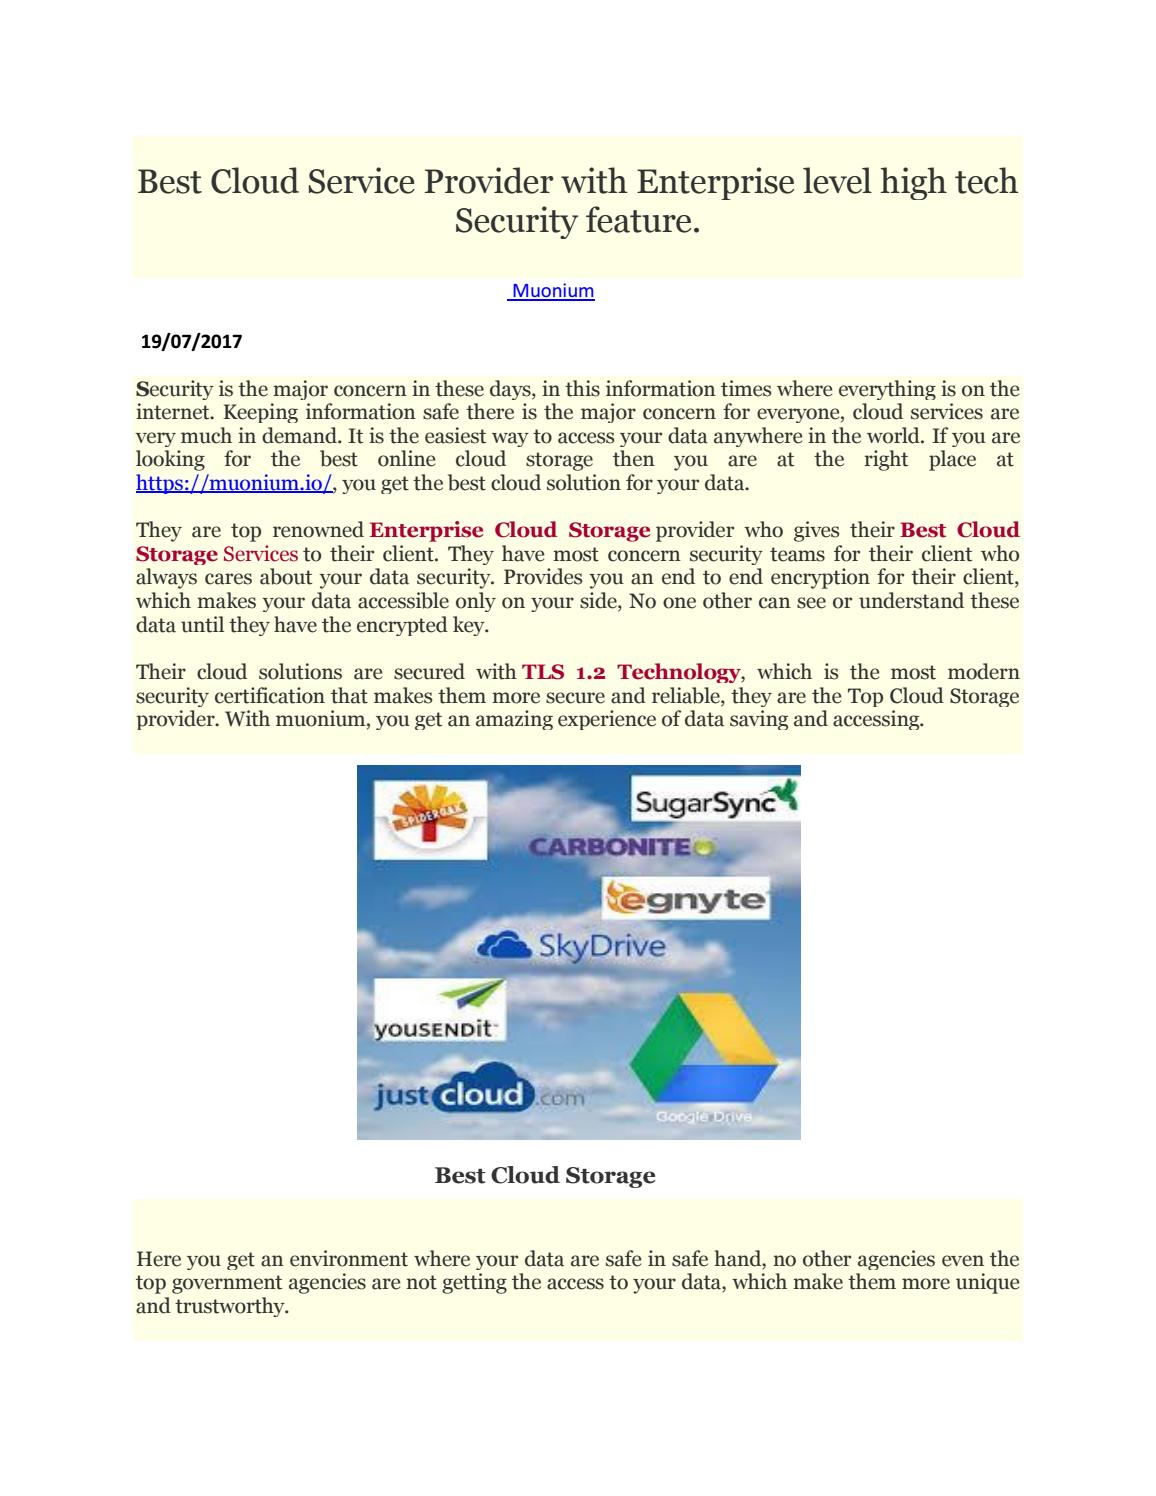 Best Cloud Service Provider With Enterprise Level High Tech Security Feature By Muonium Io Issuu